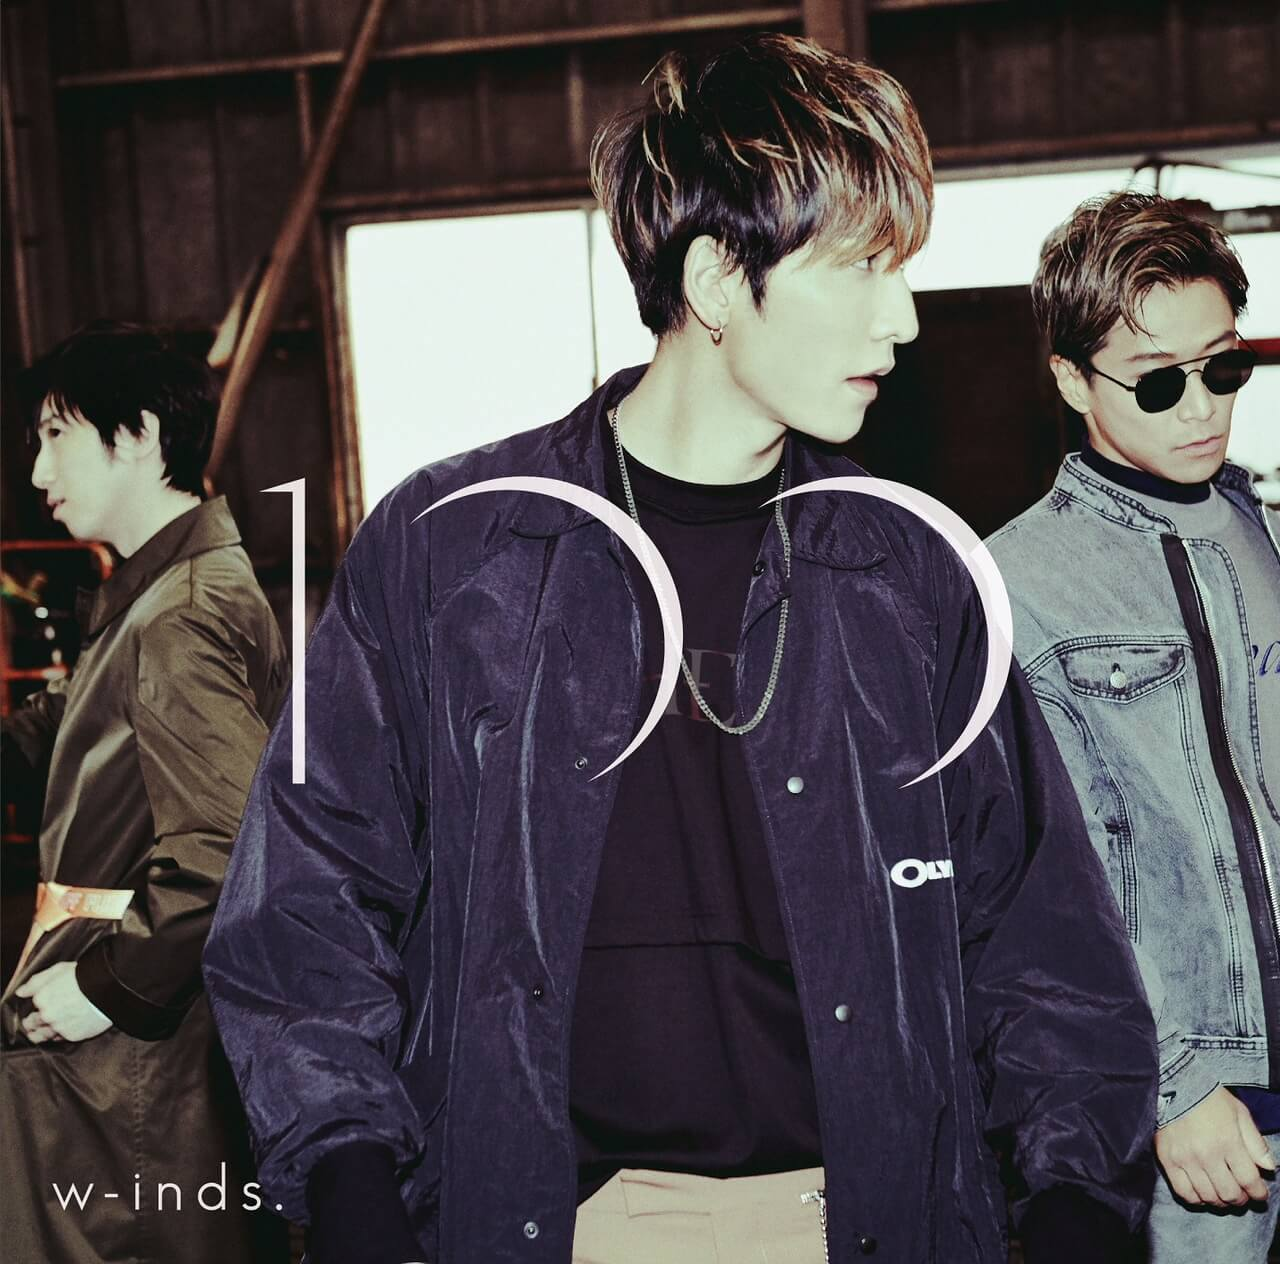 w-inds._100